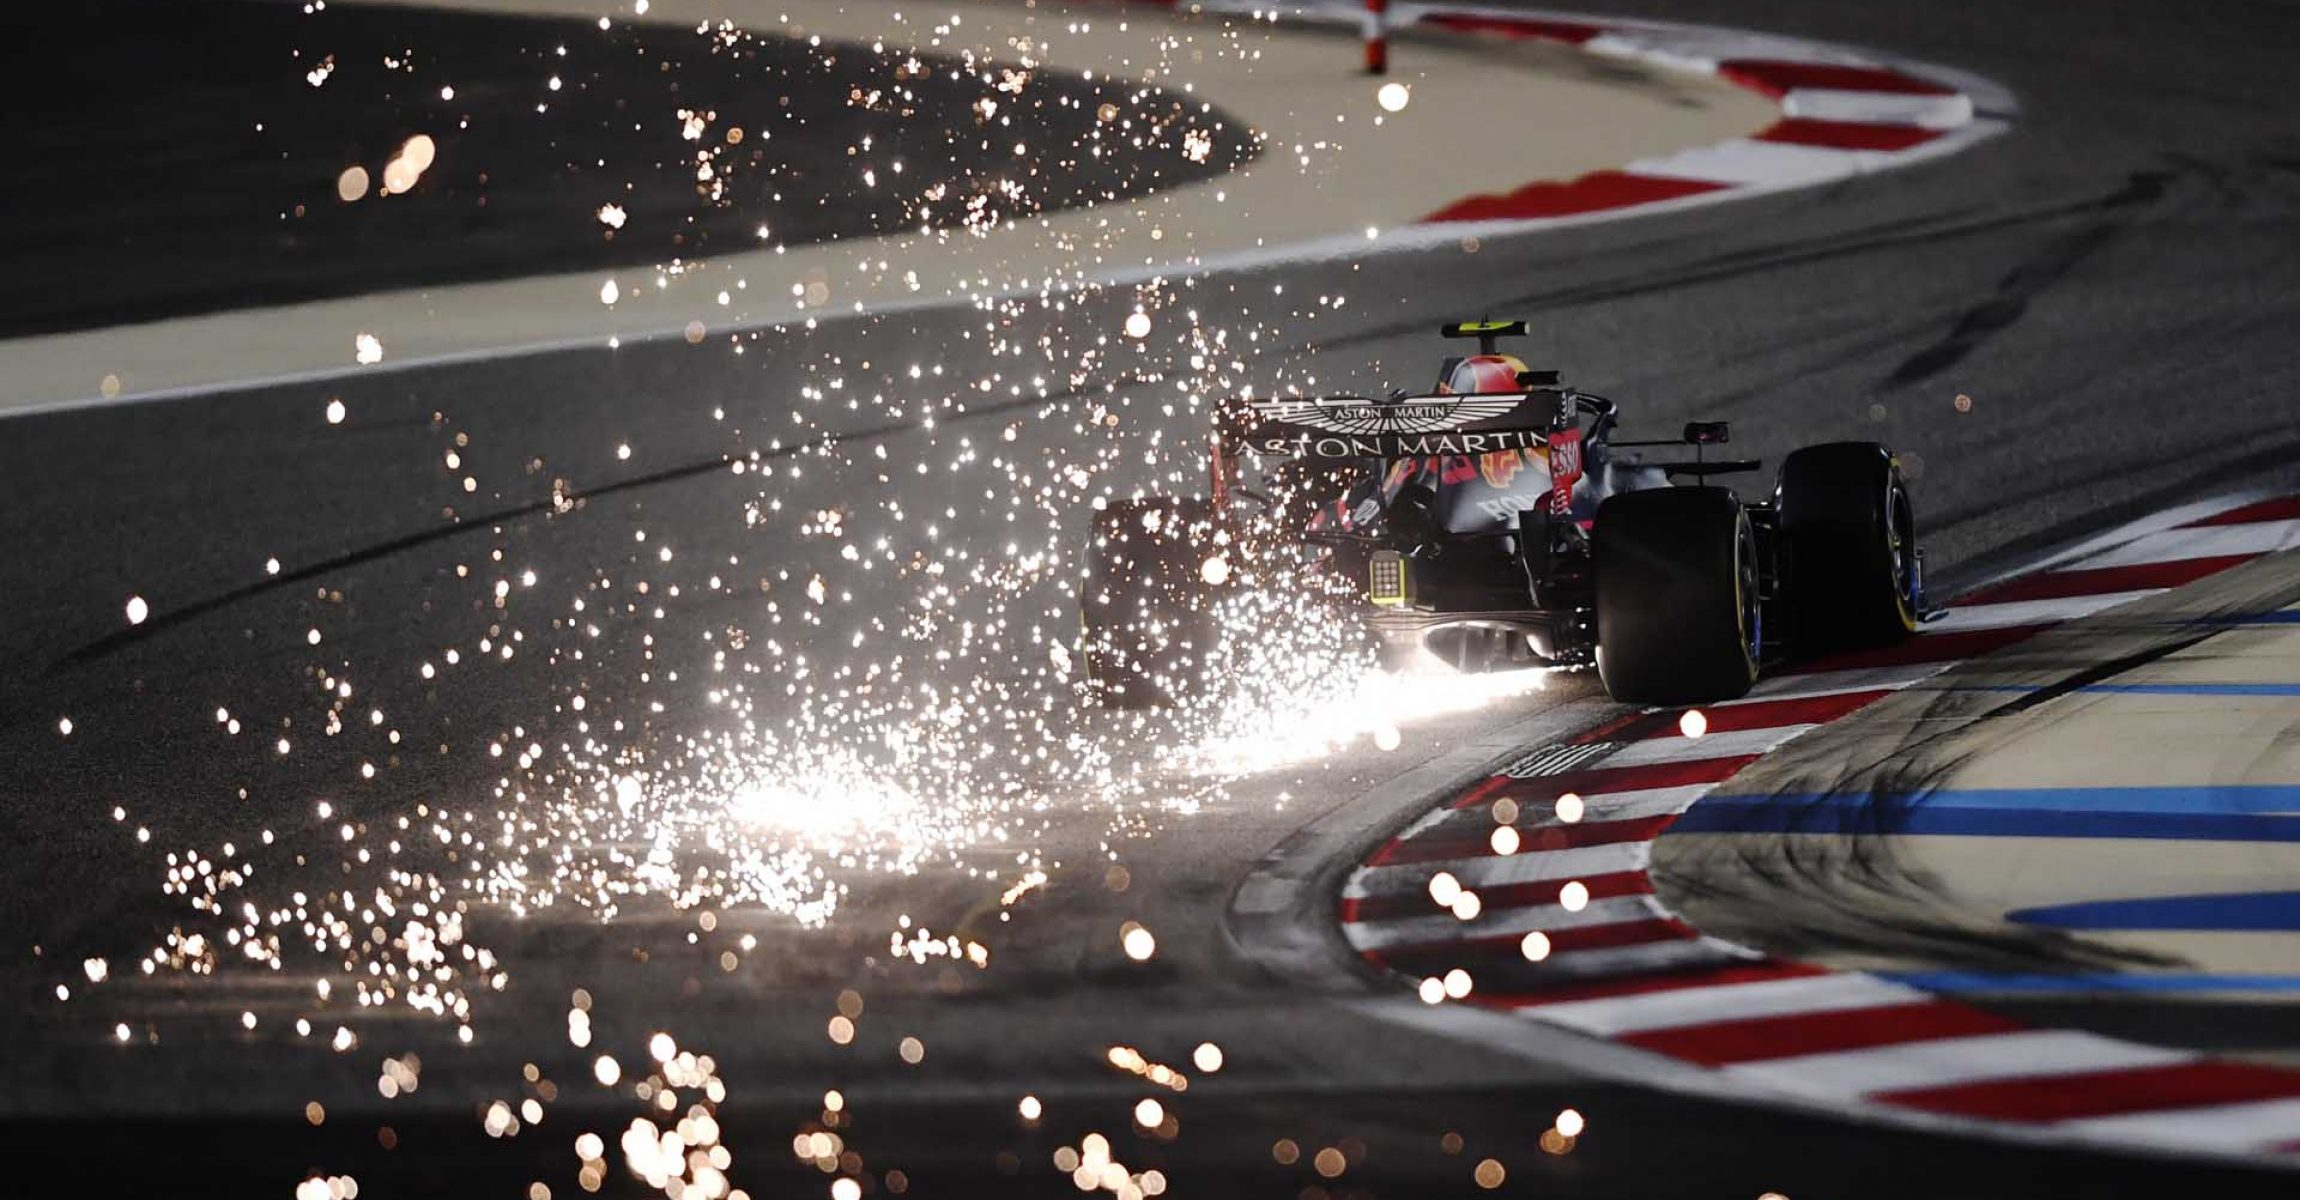 BAHRAIN, BAHRAIN - DECEMBER 04: Sparks fly behind Alexander Albon of Thailand driving the (23) Aston Martin Red Bull Racing RB16 during practice ahead of the F1 Grand Prix of Sakhir at Bahrain International Circuit on December 04, 2020 in Bahrain, Bahrain. (Photo by Rudy Carezzevoli/Getty Images) beauty